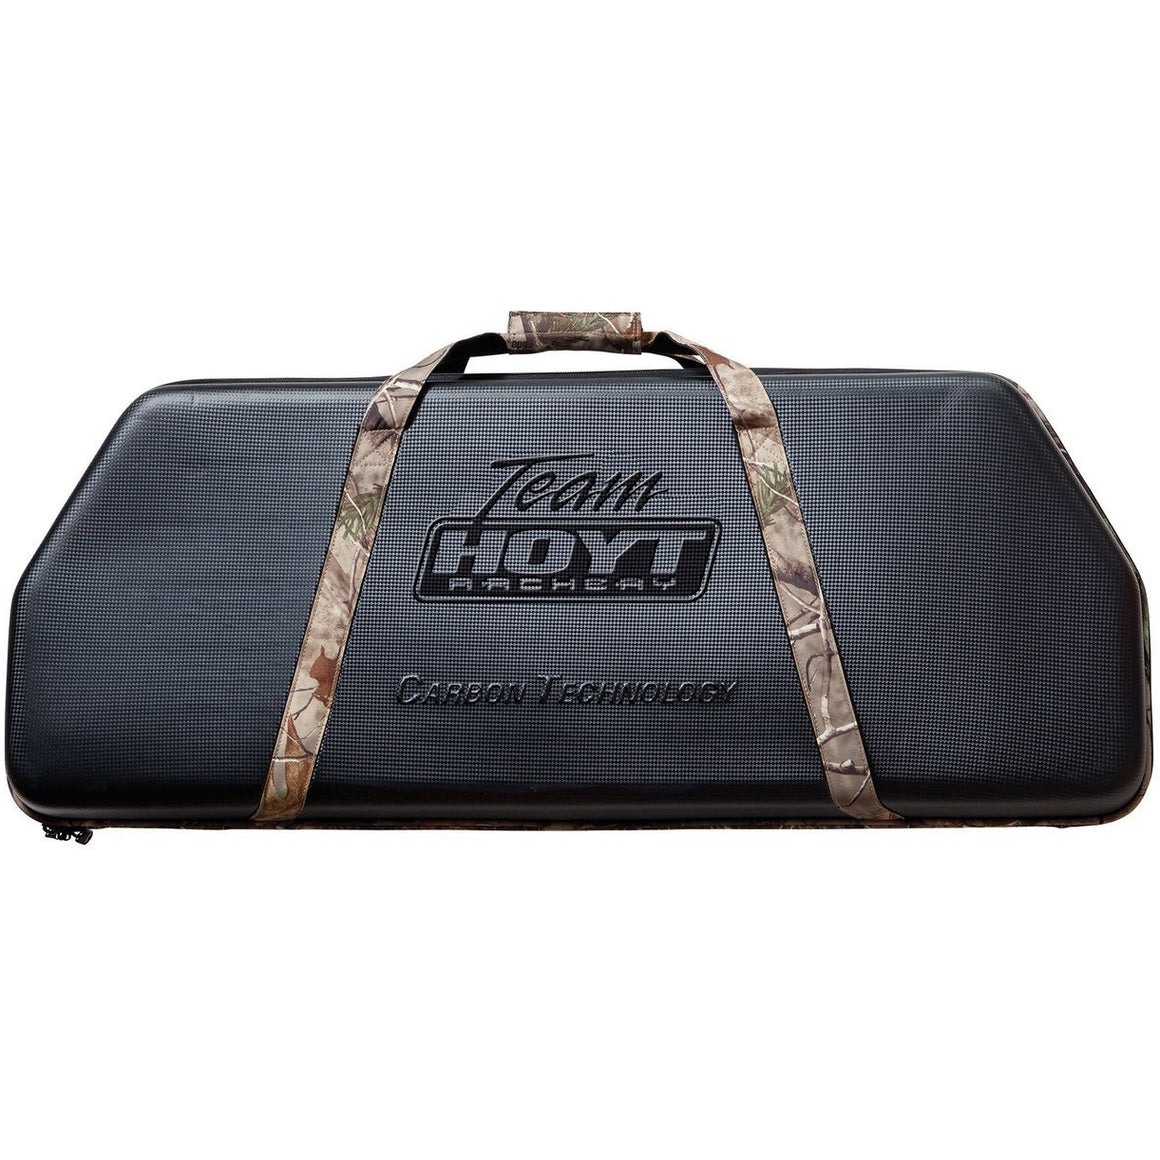 Hoyt Moulded Carbon Weave Design Bow Case